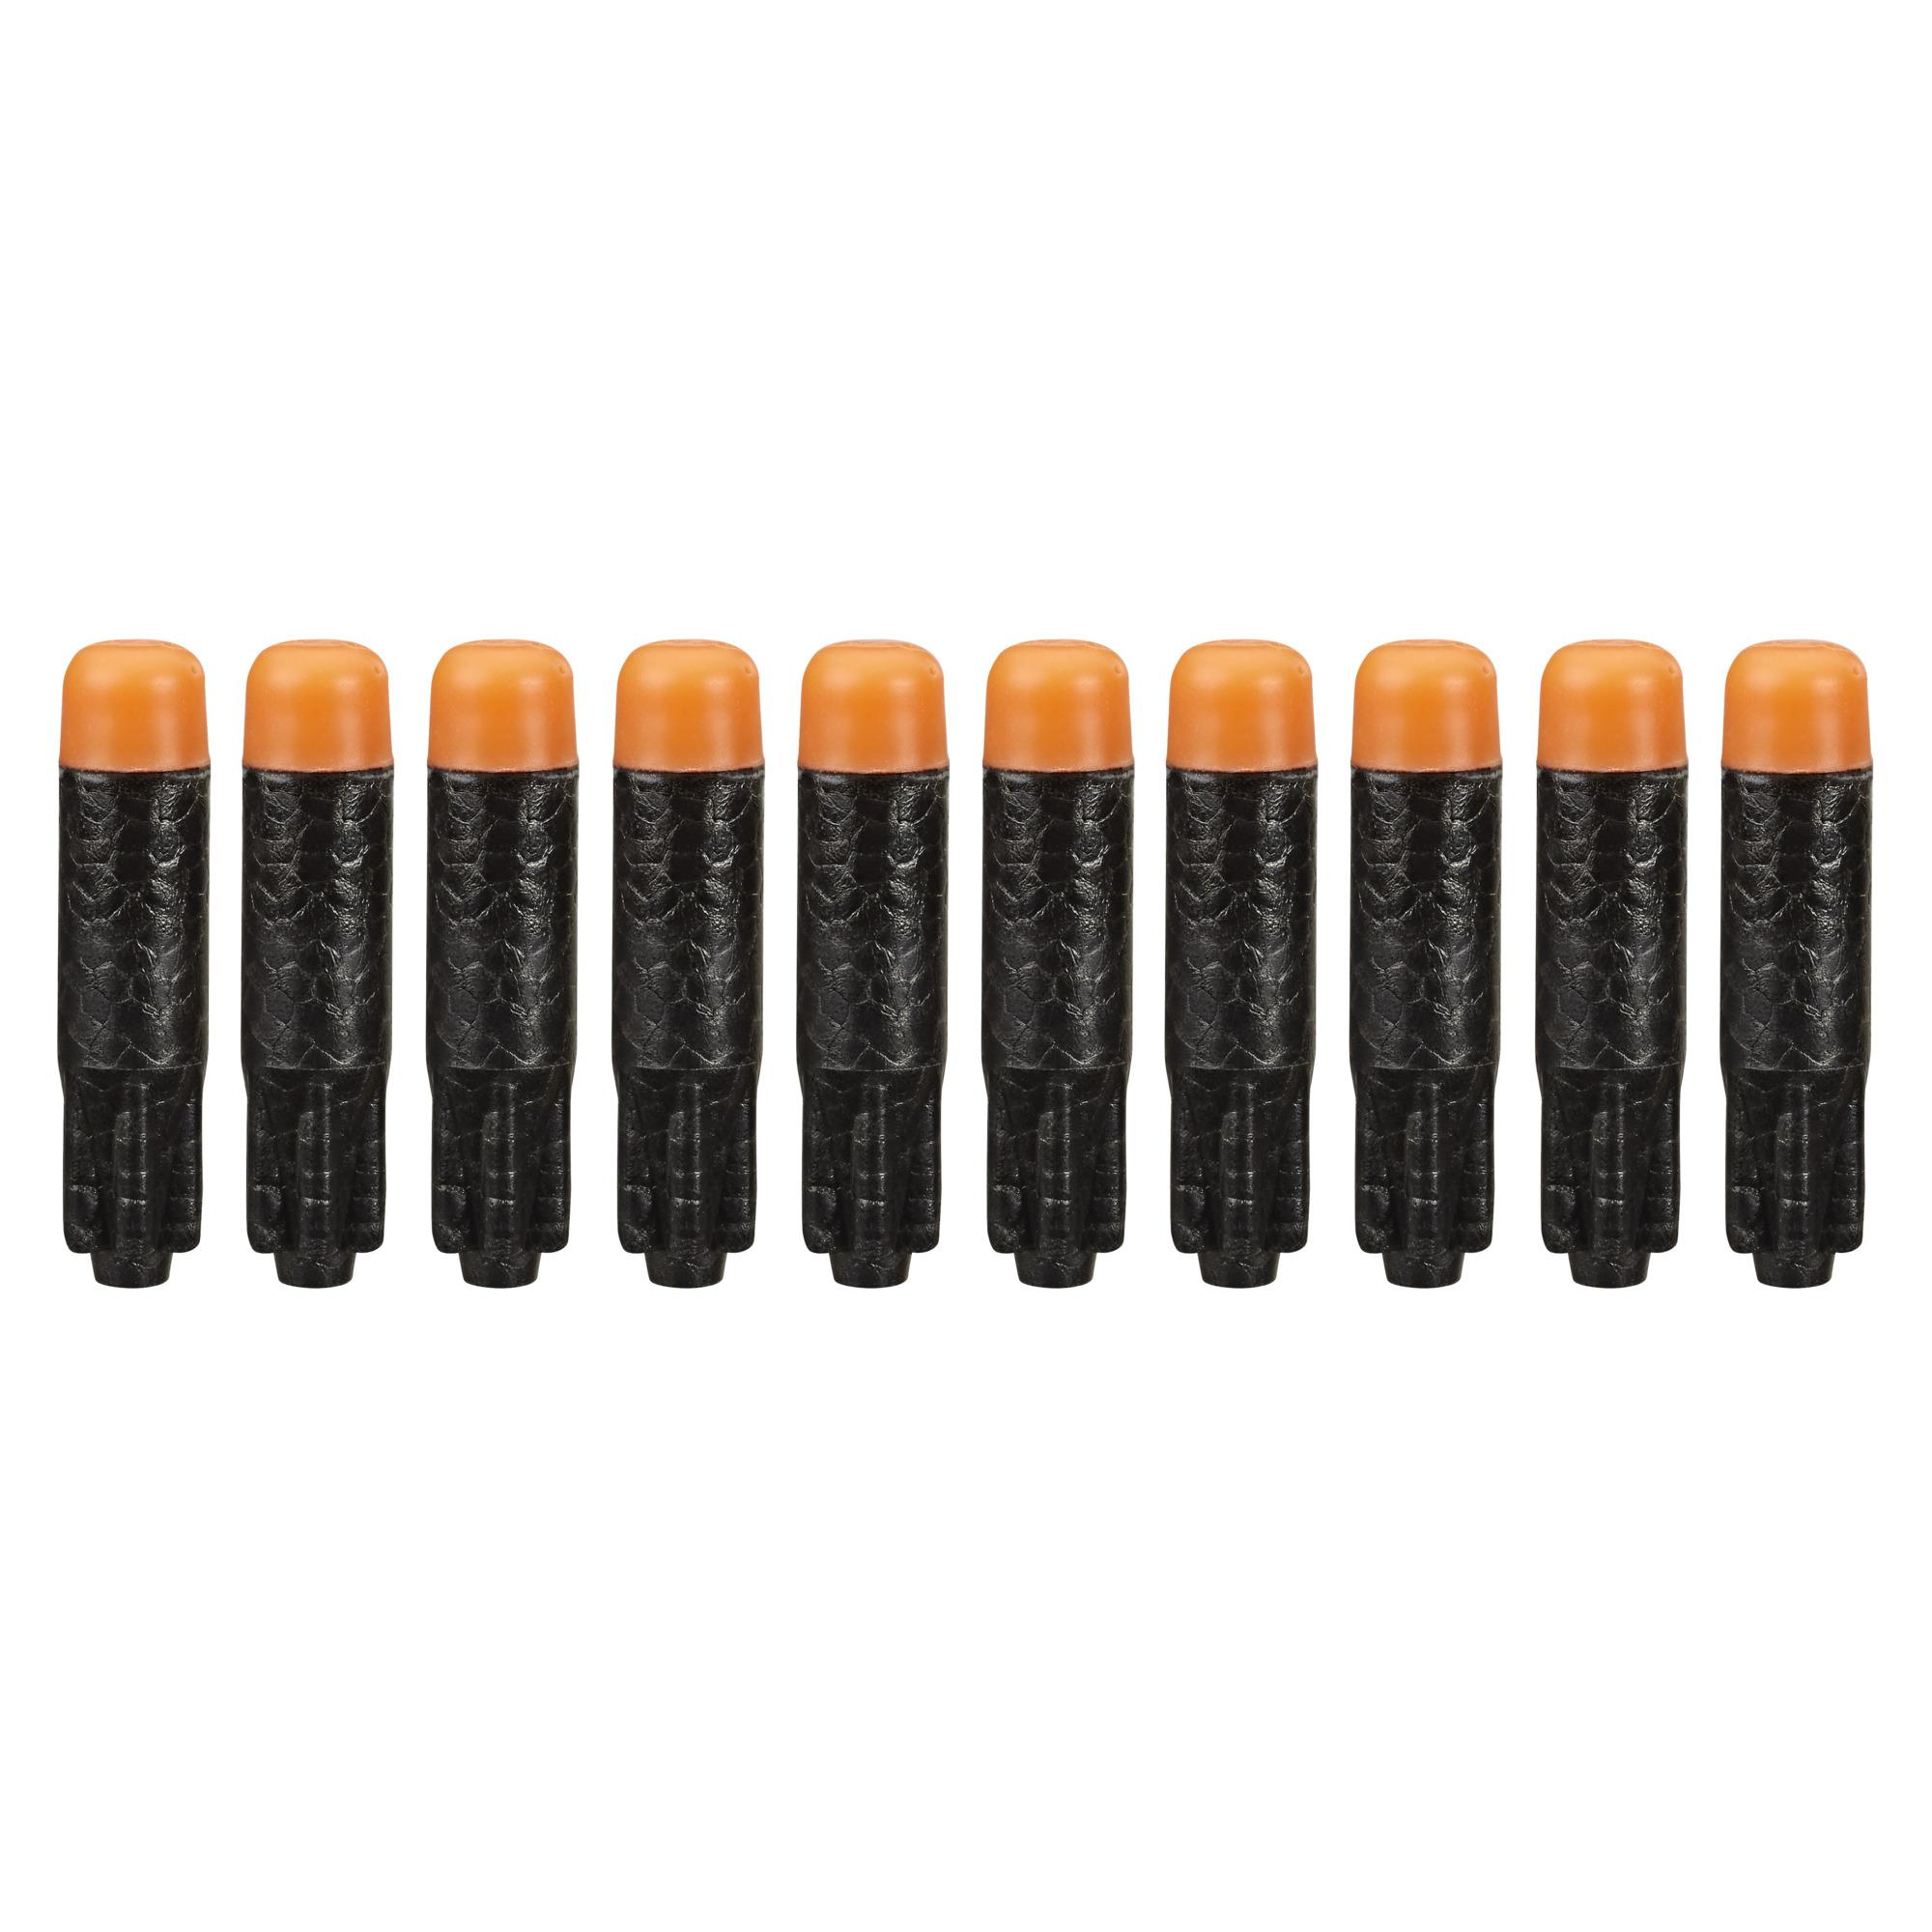 Nerf Ultra 10-Dart Refill Pack -- The Ultimate in Nerf Dart Blasting -- Compatible Only with Nerf Ultra Blasters